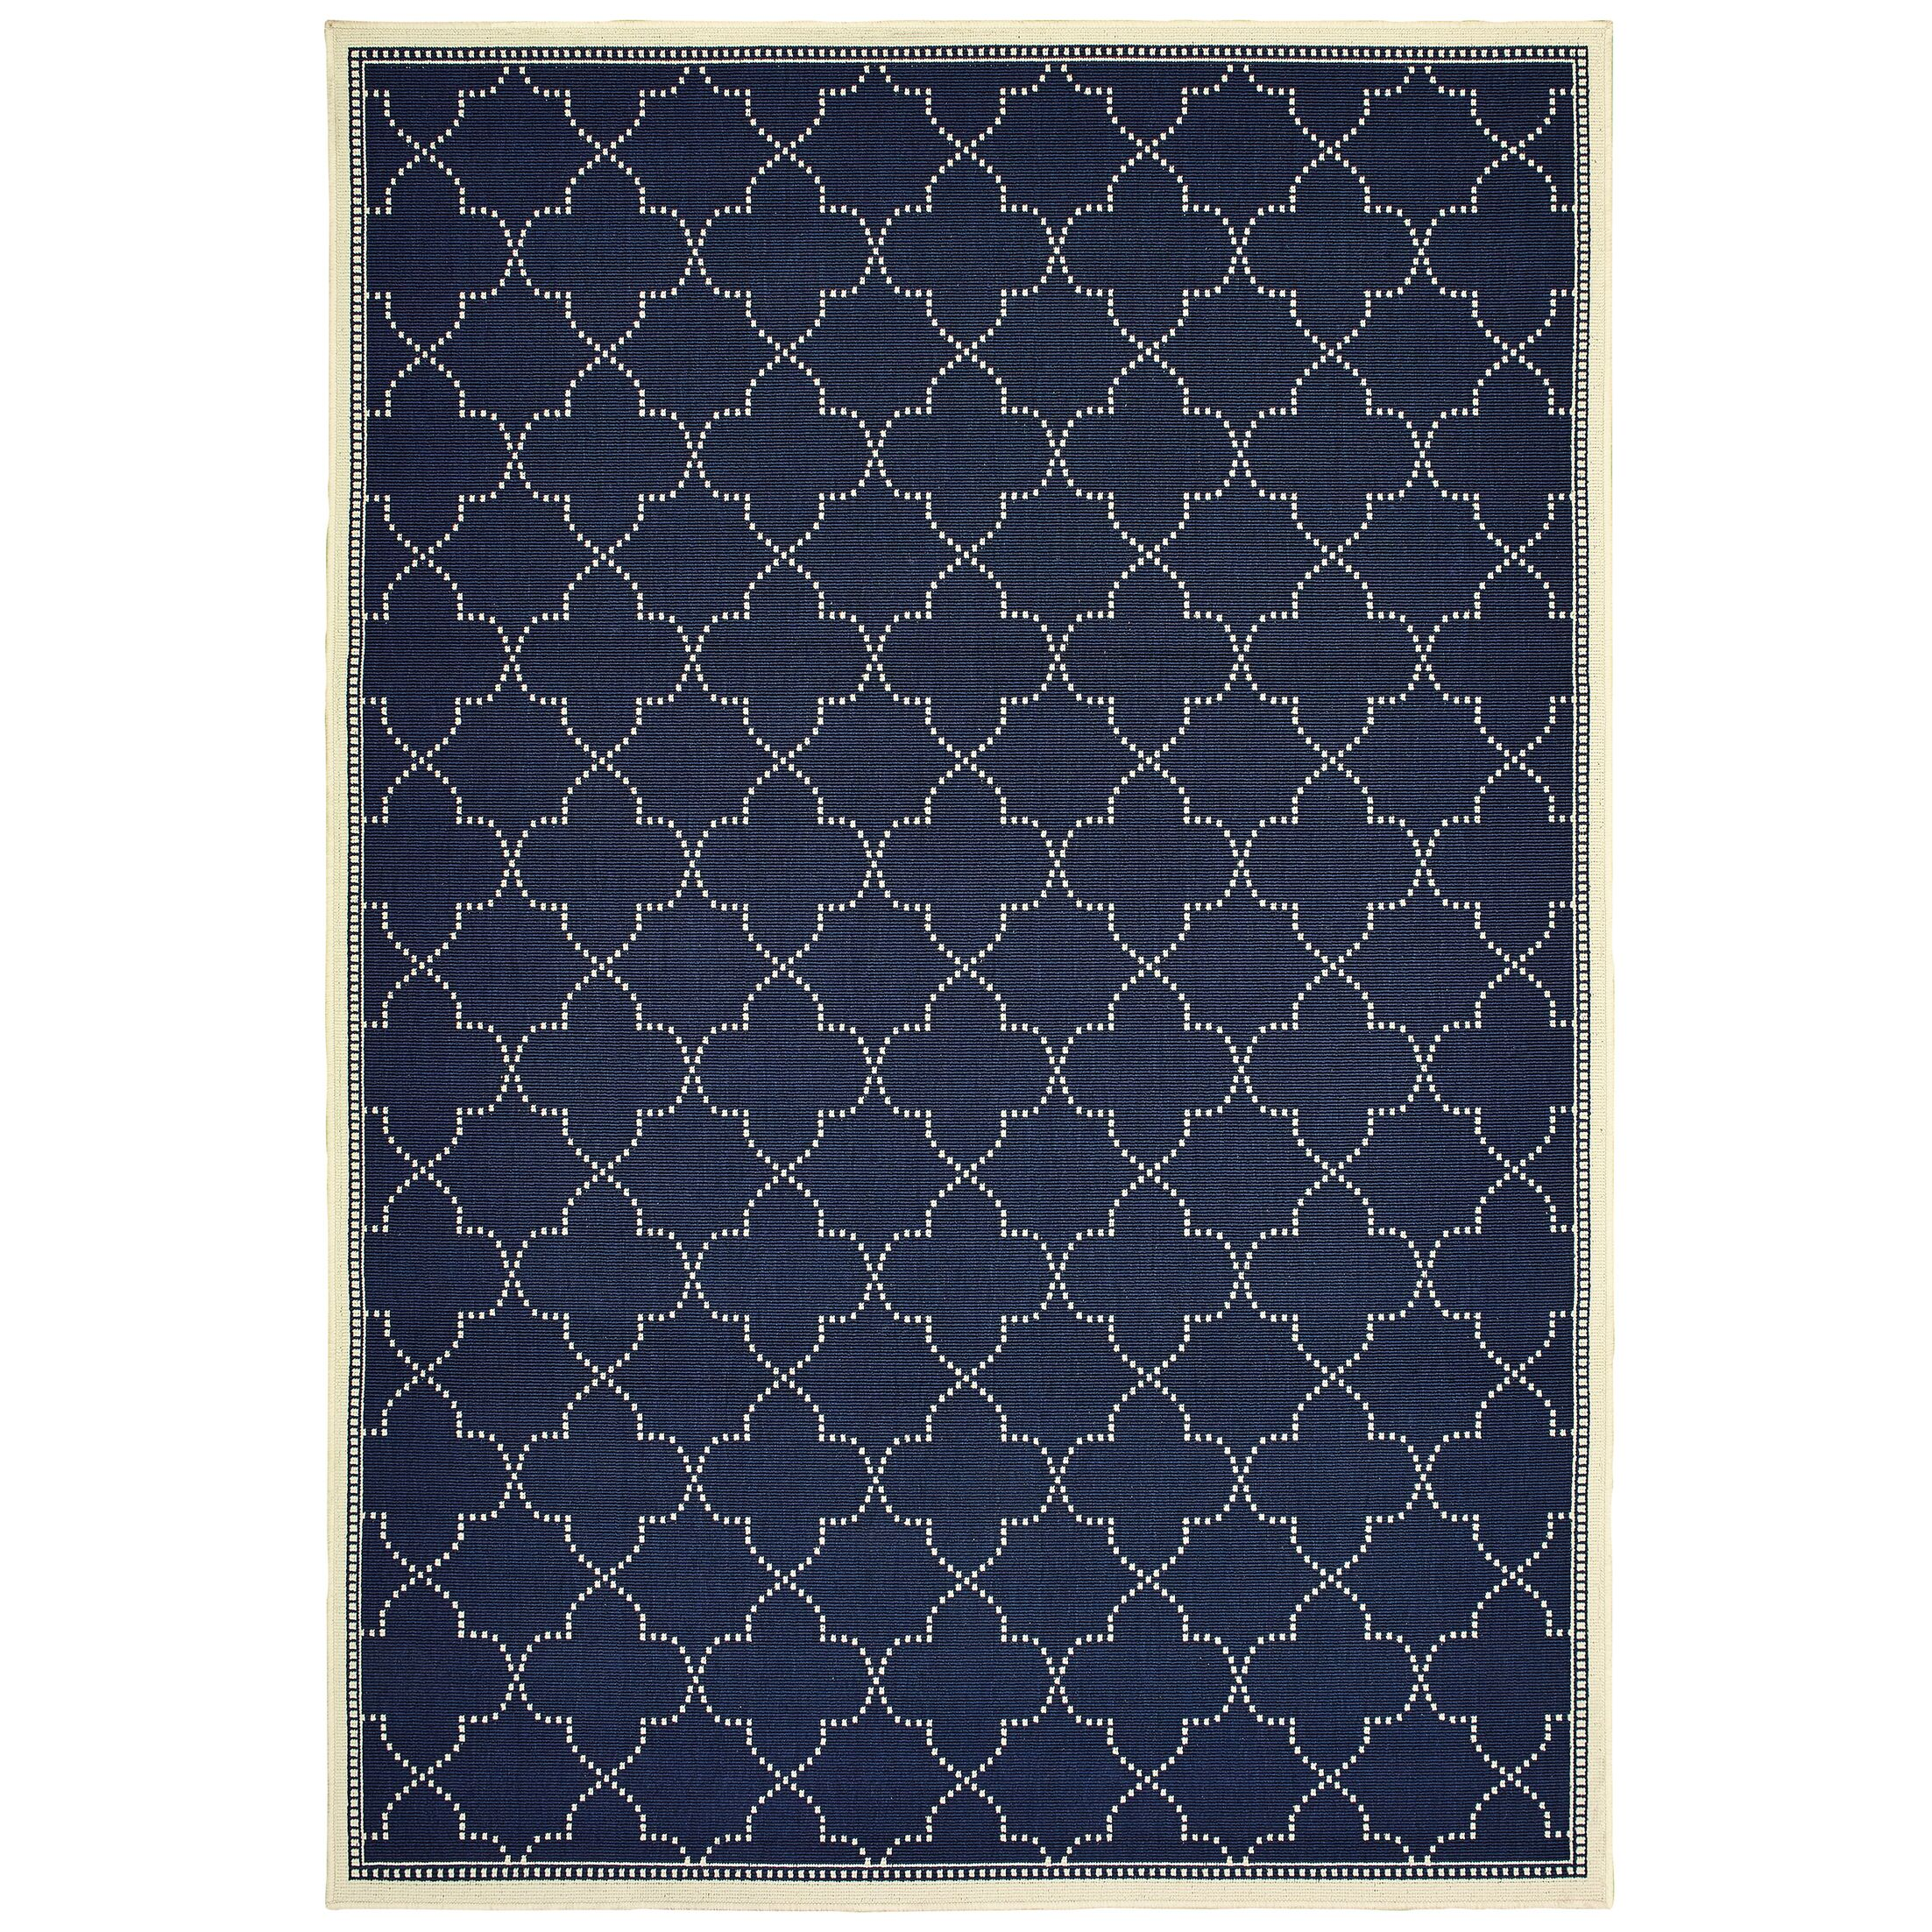 Salerno Simple Lattice Navy Indoor/Outdoor Area Rug Rug Size: Rectangle 8'6